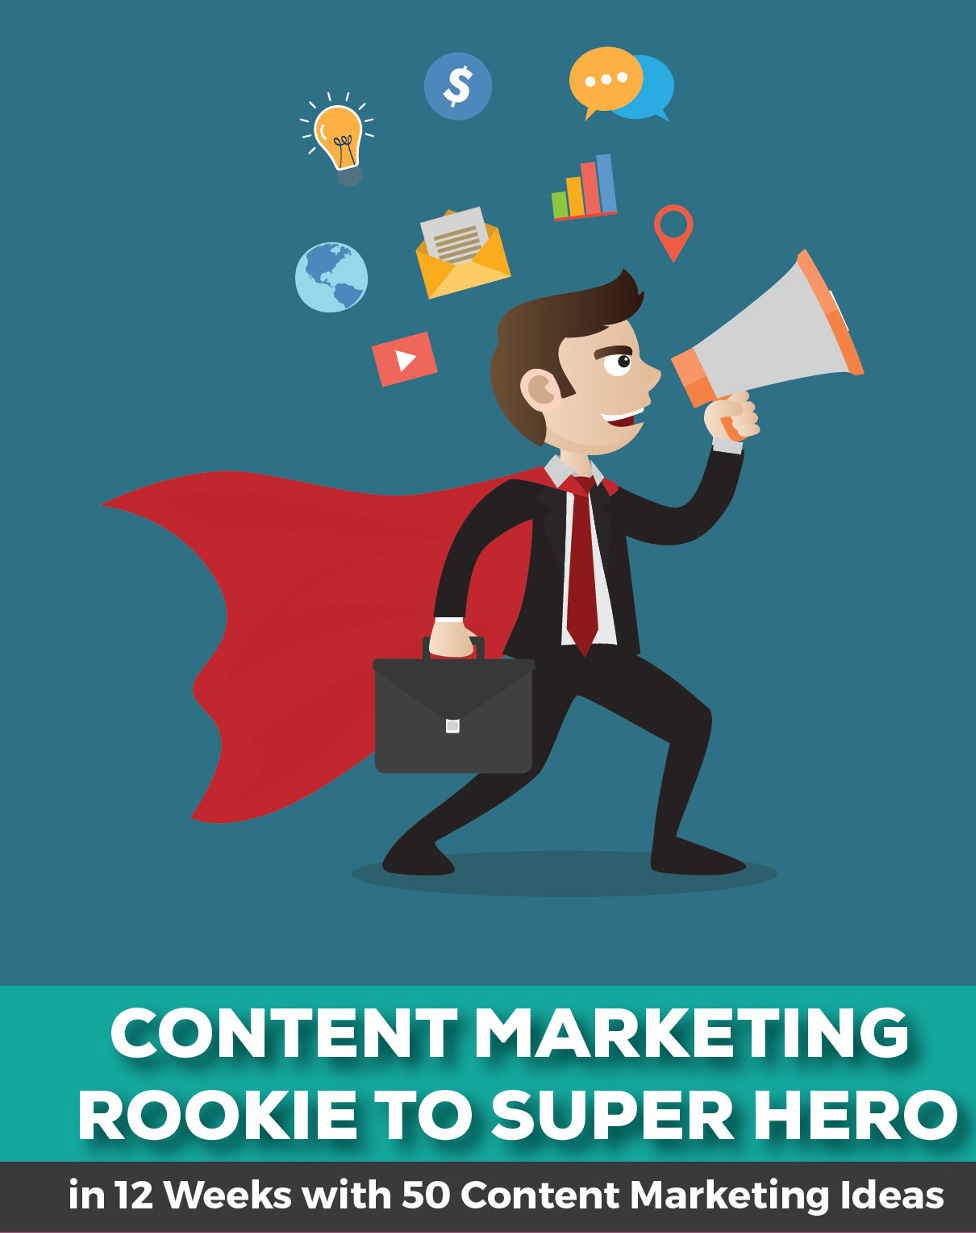 Content Marketing Rookie To Super Hero In 12 Weeks